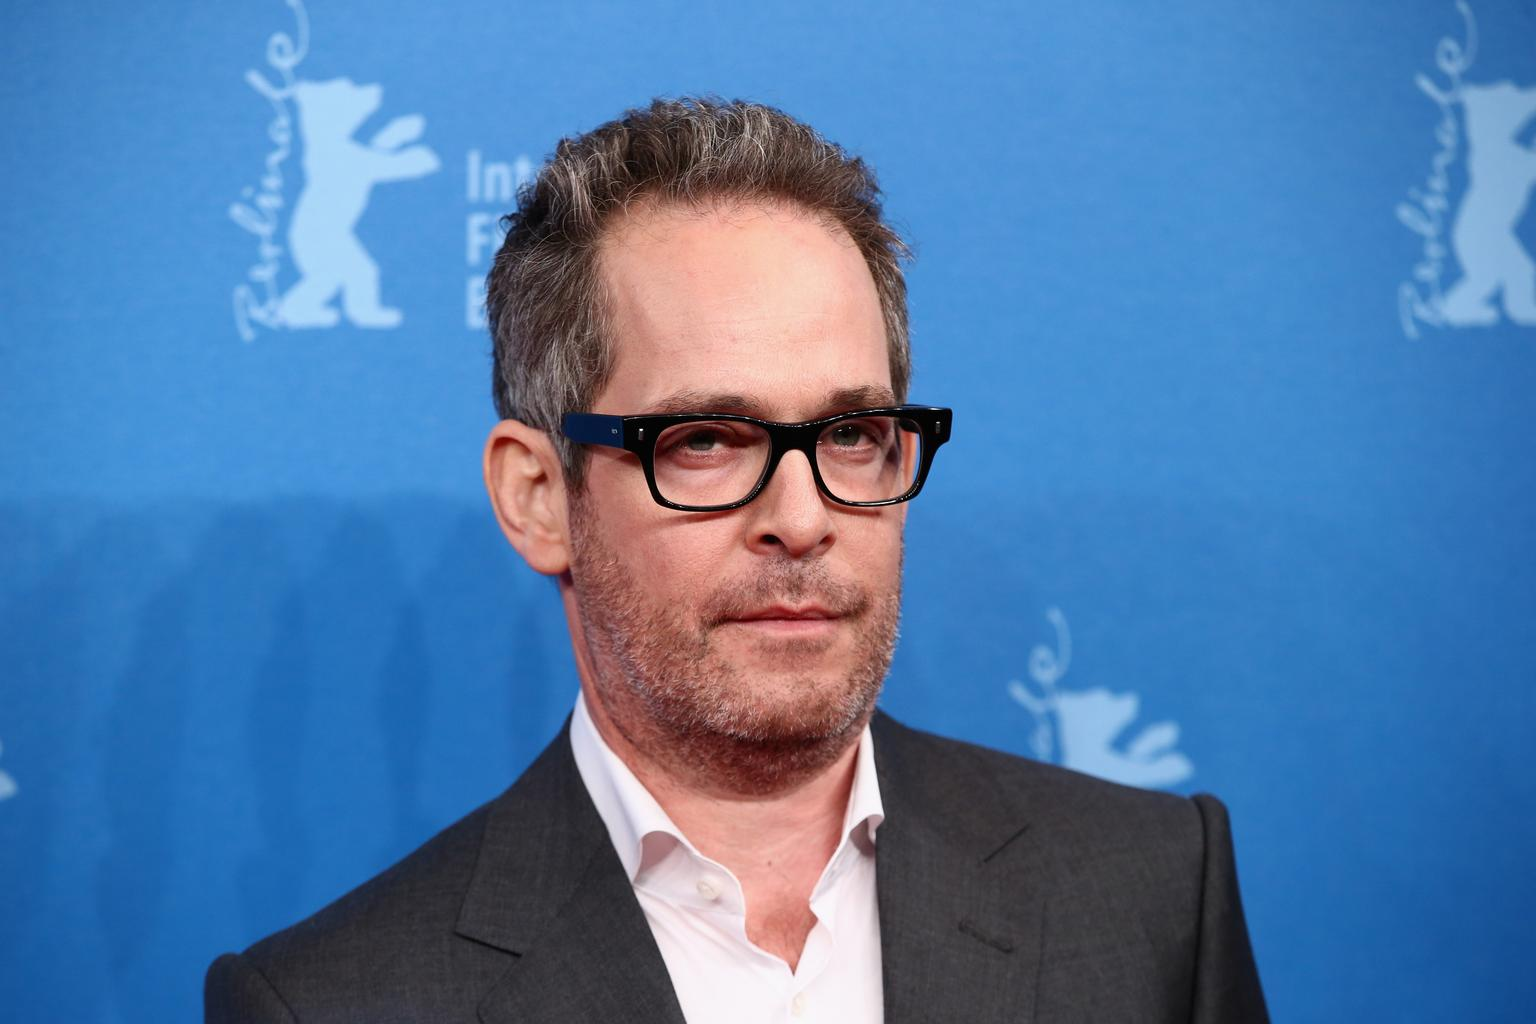 who is tom hollander partner